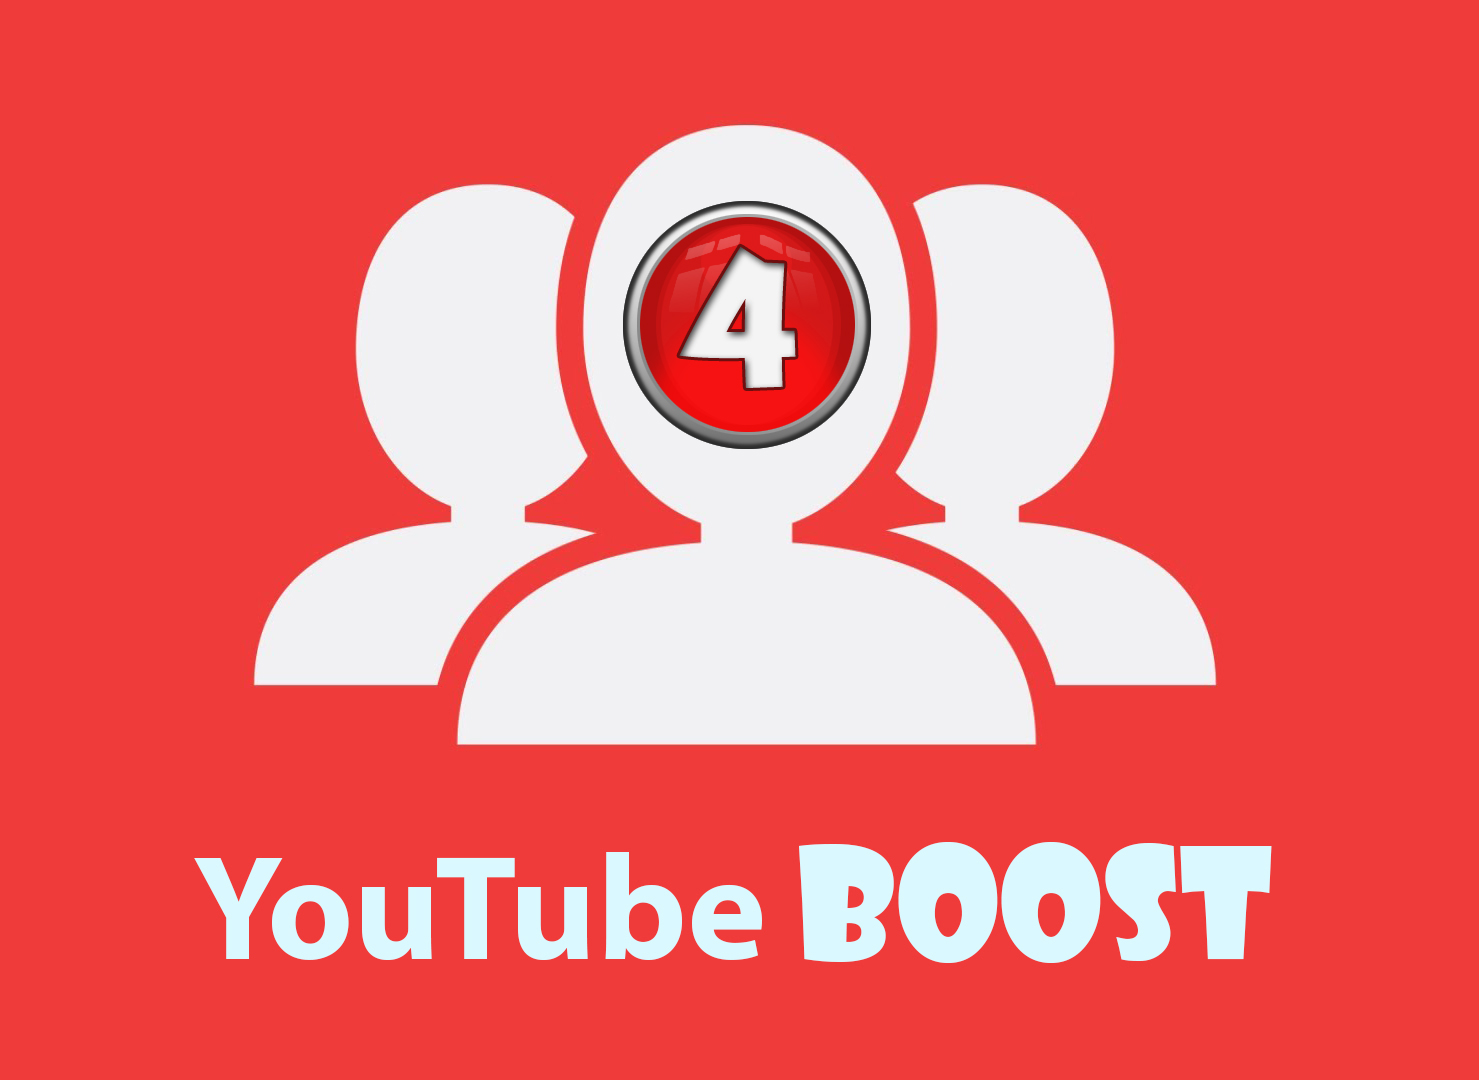 YouTube Boost - 14,000 views, 200 likes, 70 subscribers, 60 favorites & 10 comments